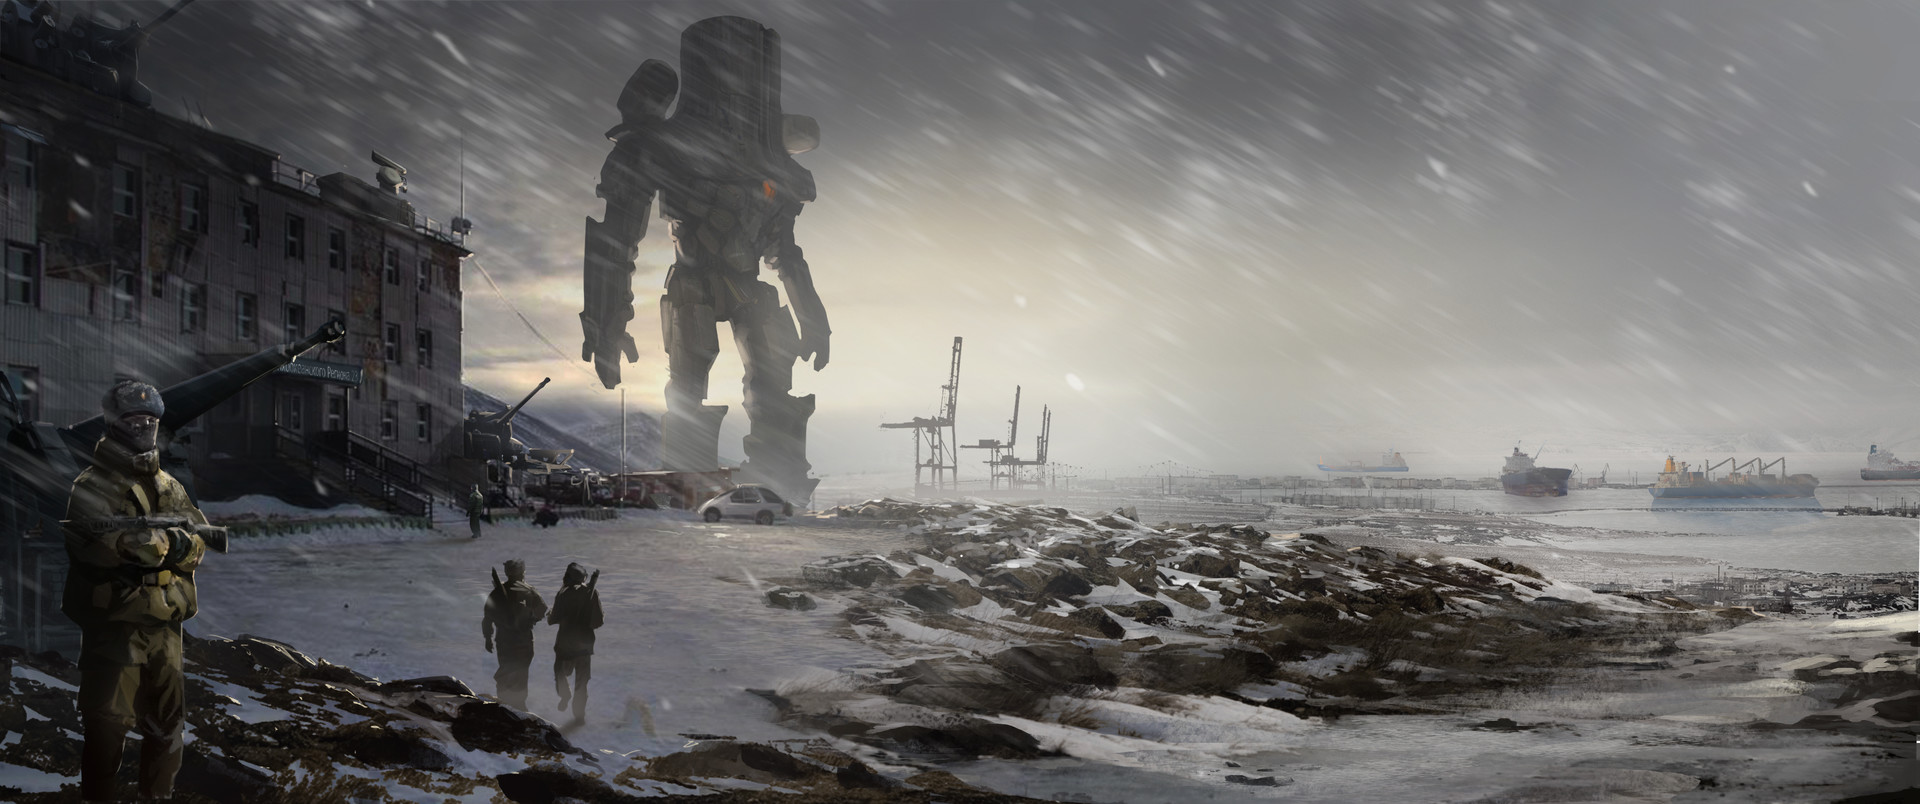 Pacific Rim Concept Art by Doug Williams